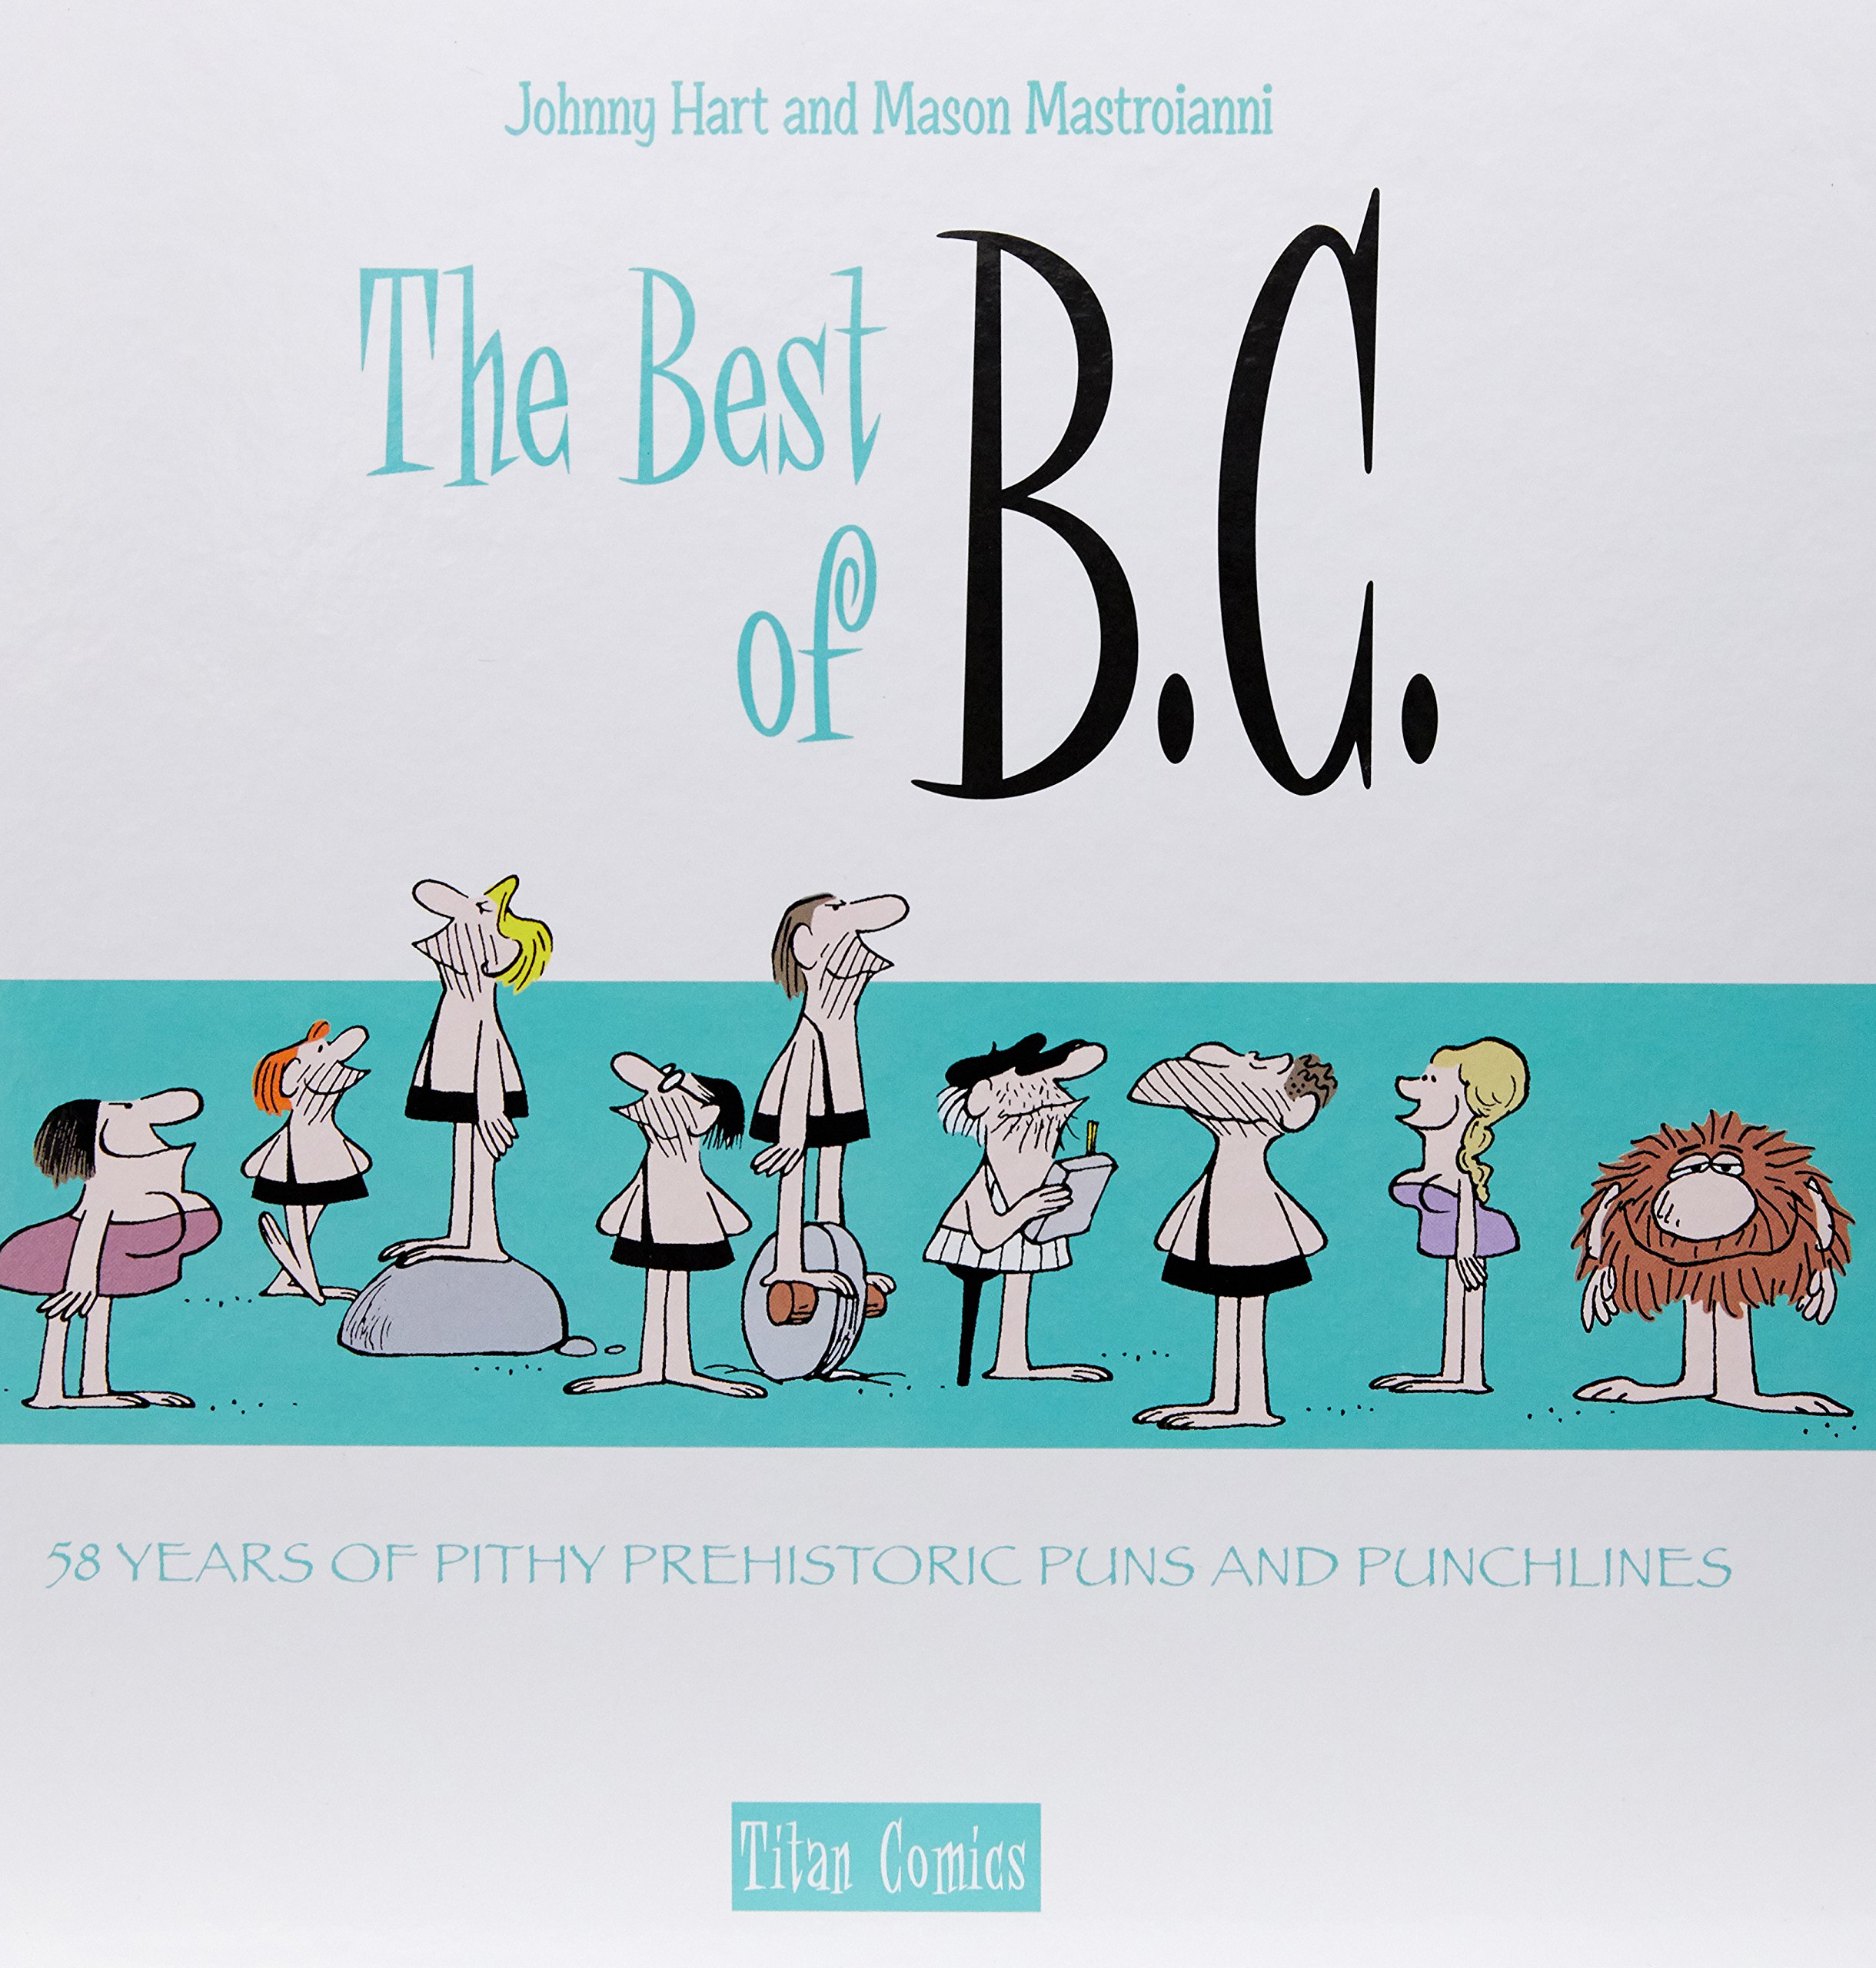 The Best of B.C.: 58 Years of Pithy Prehistoric Puns and Fun: Johnny ...